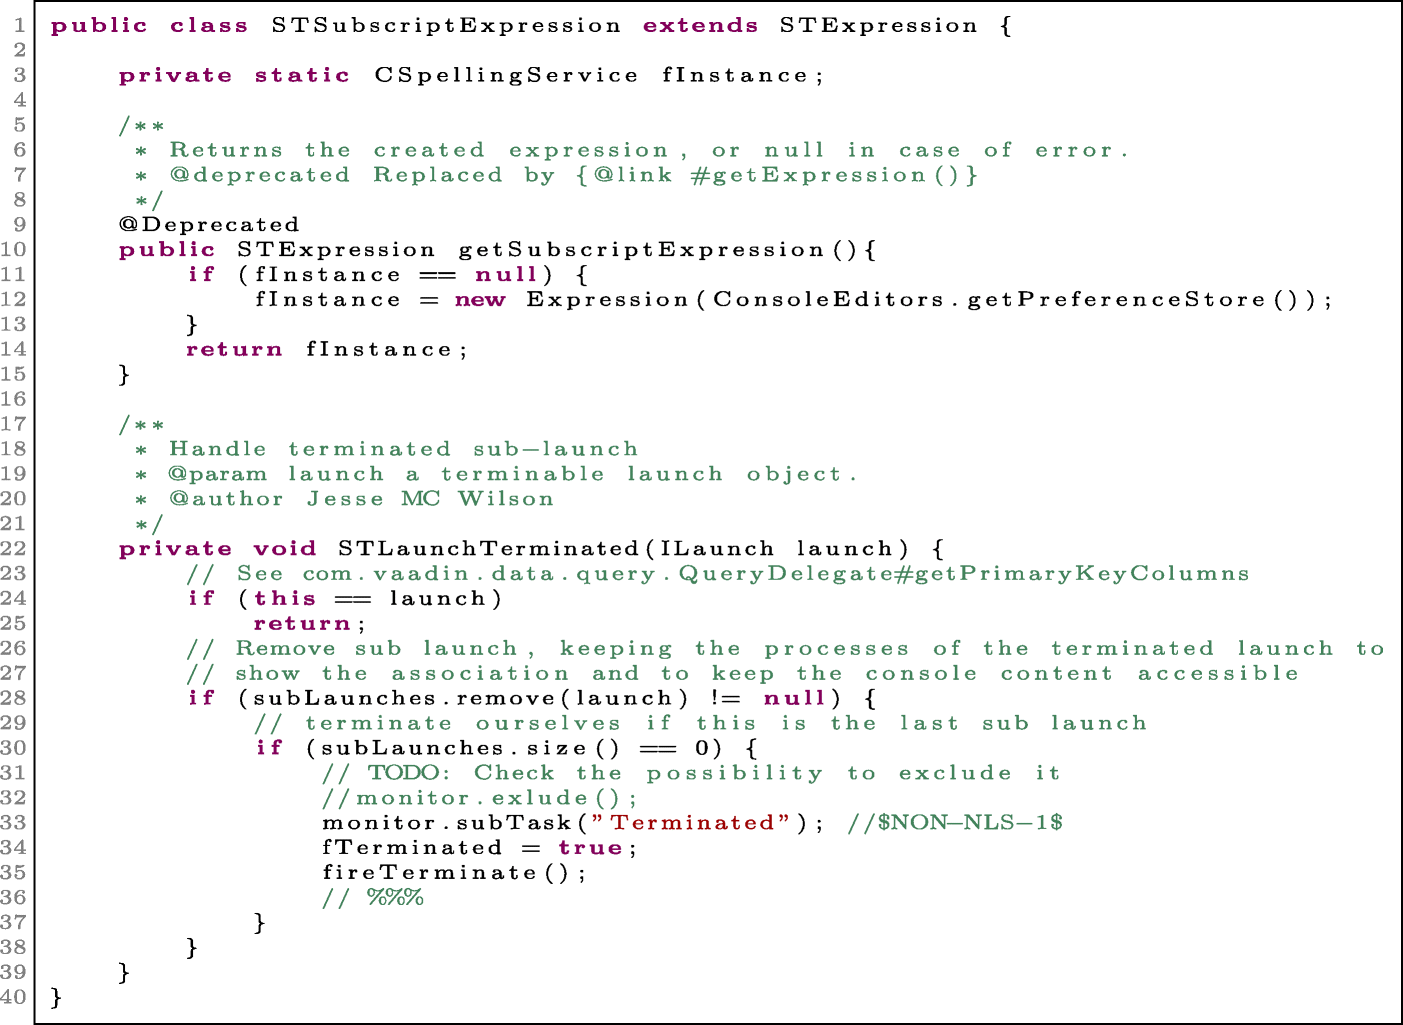 Classifying code comments in Java software systems